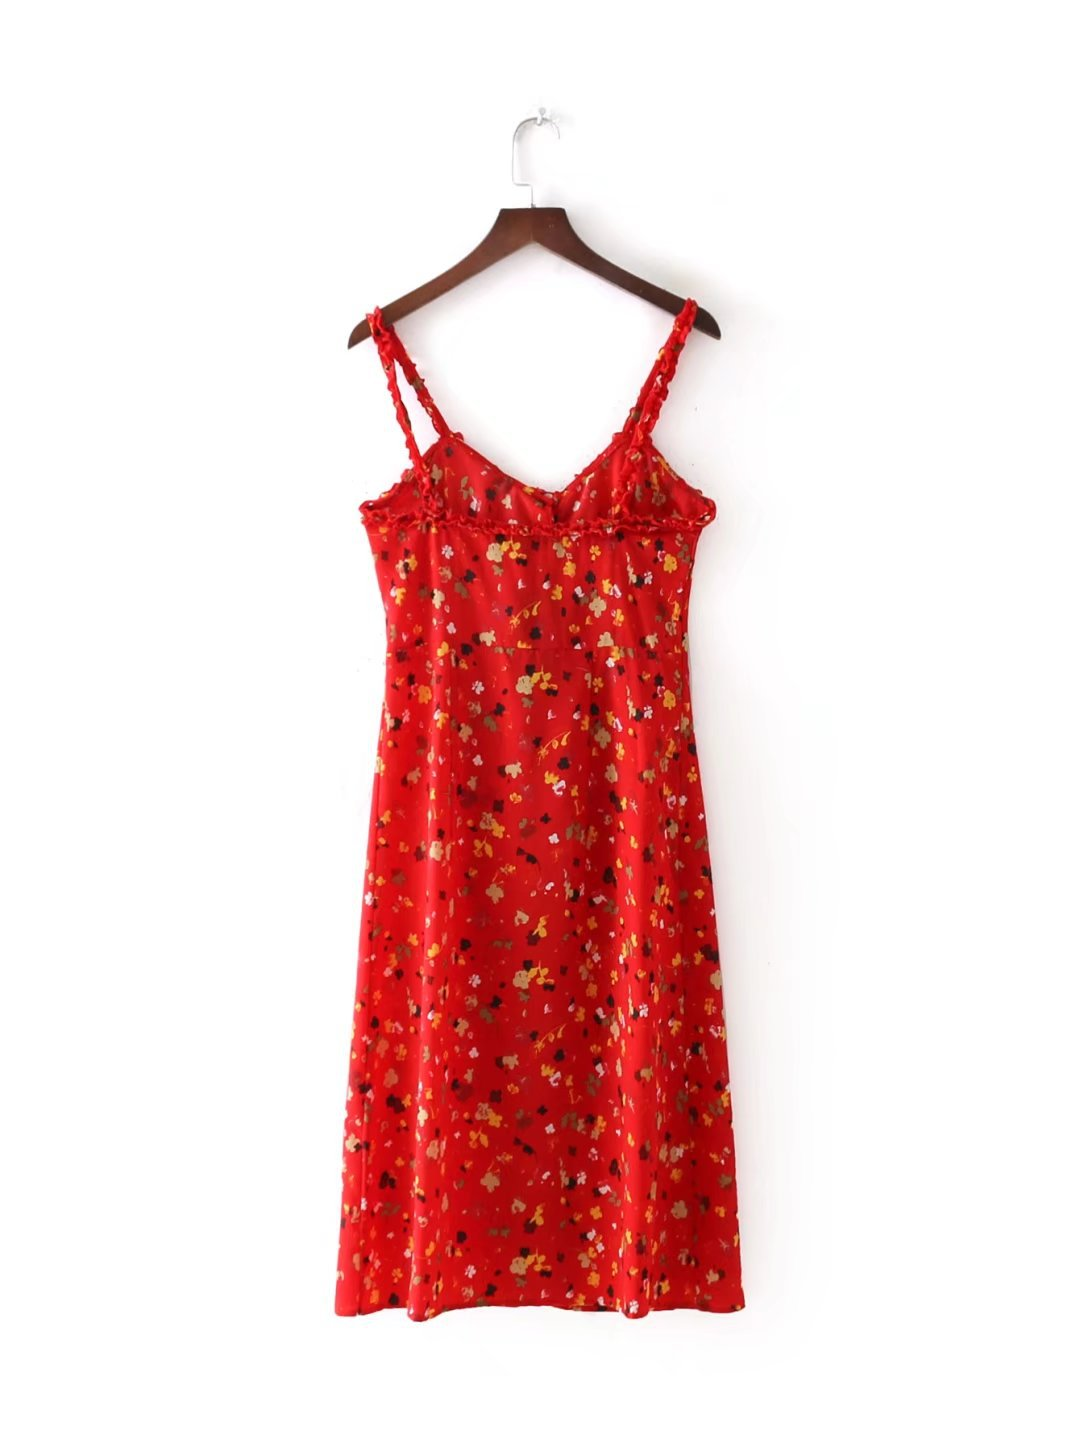 Sexy & Party Chiffon  dress  (Red-s)  NHAM1462-Red-s